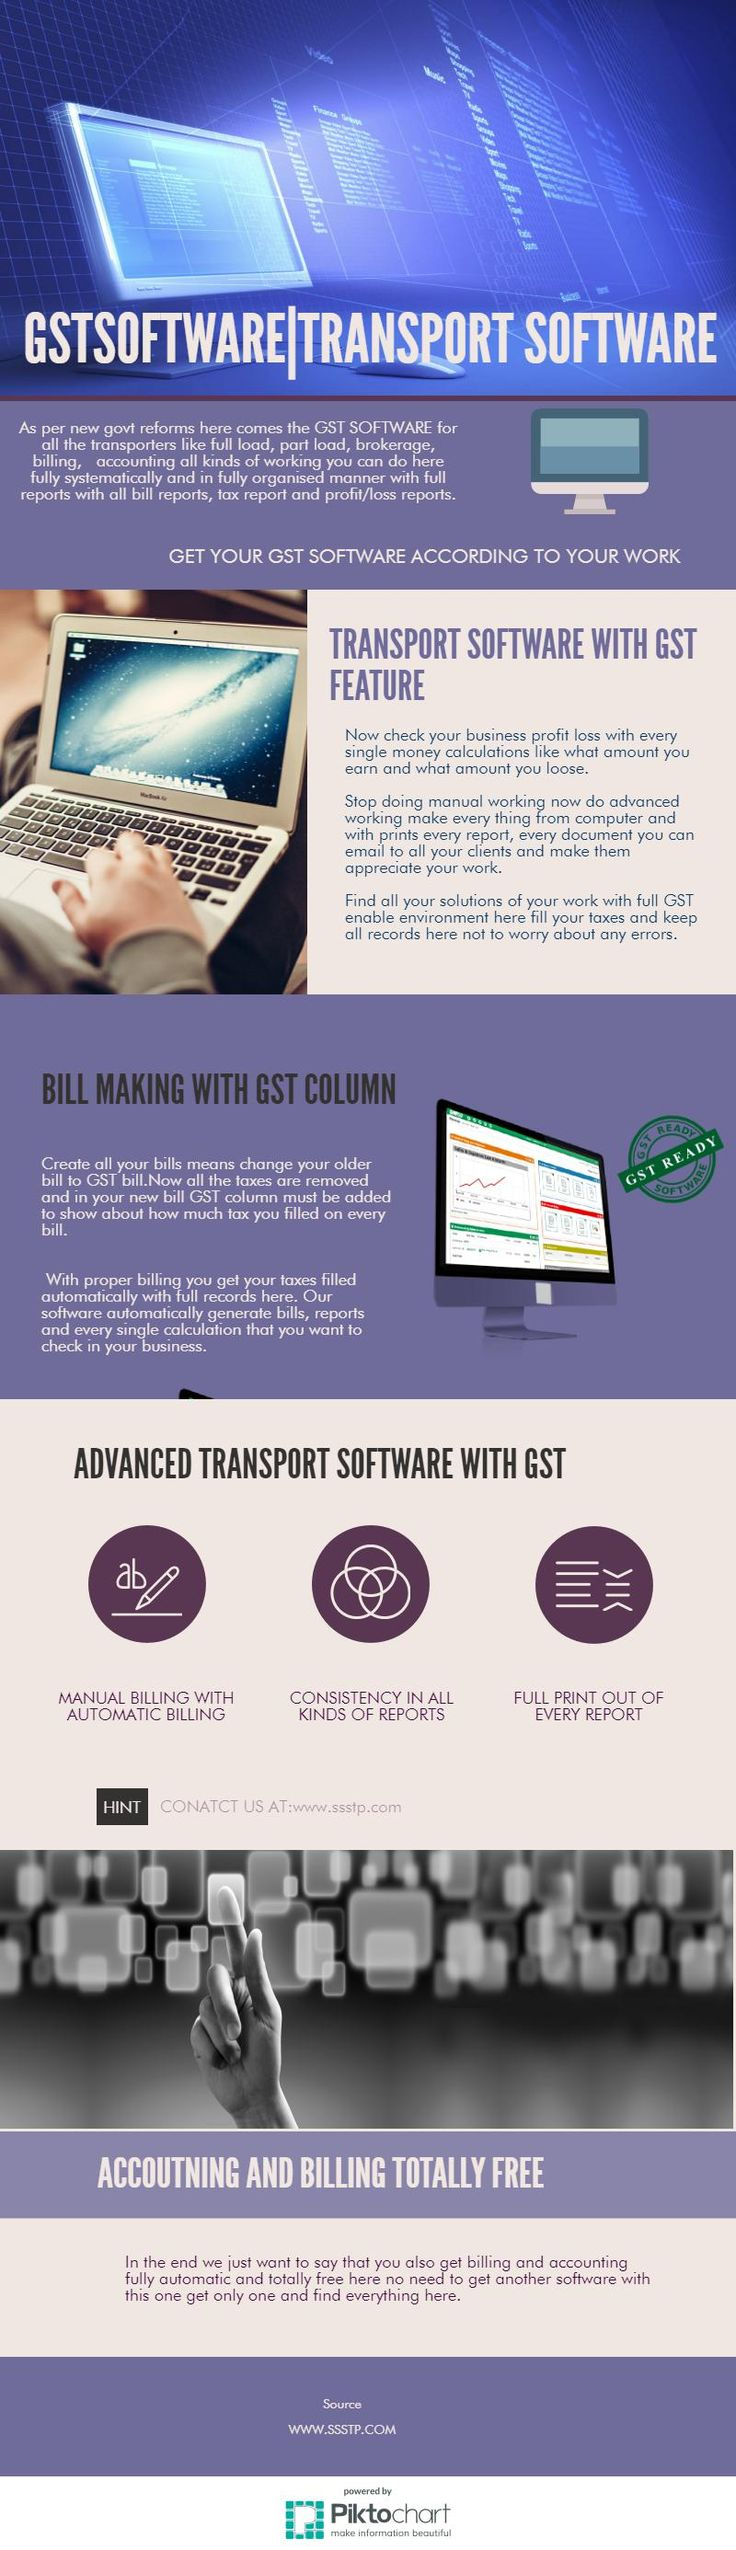 Now if you want your GST tax fulfilled on right time with all kinds of necessary calculations and with full reporting as what amount your tax given on time to time. Here is GST TAX SOFTWARE for transporters or you can say is transport software delhi in delhi area near by you.